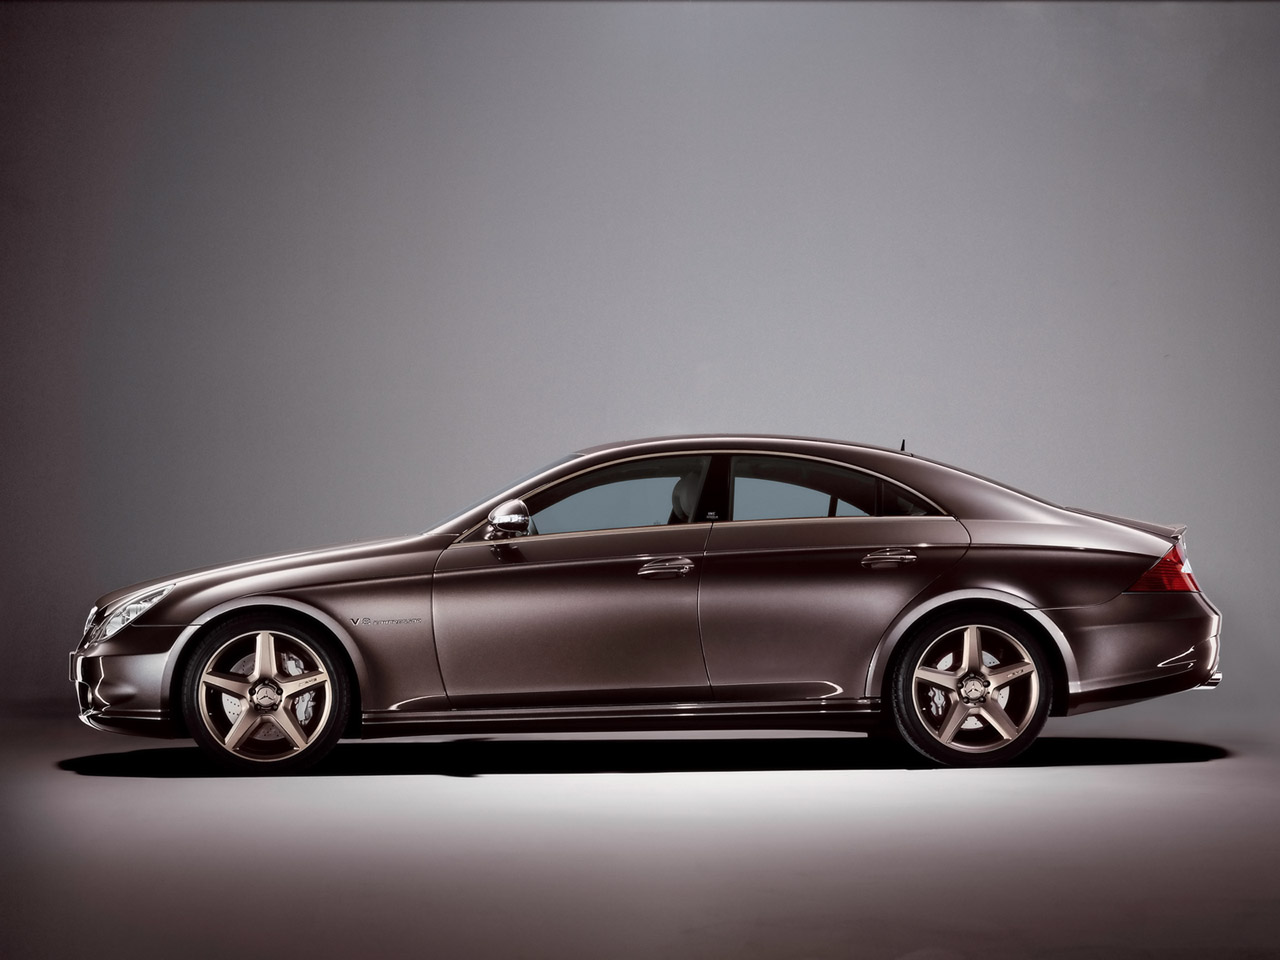 Mercedes-benz cls photo - 2